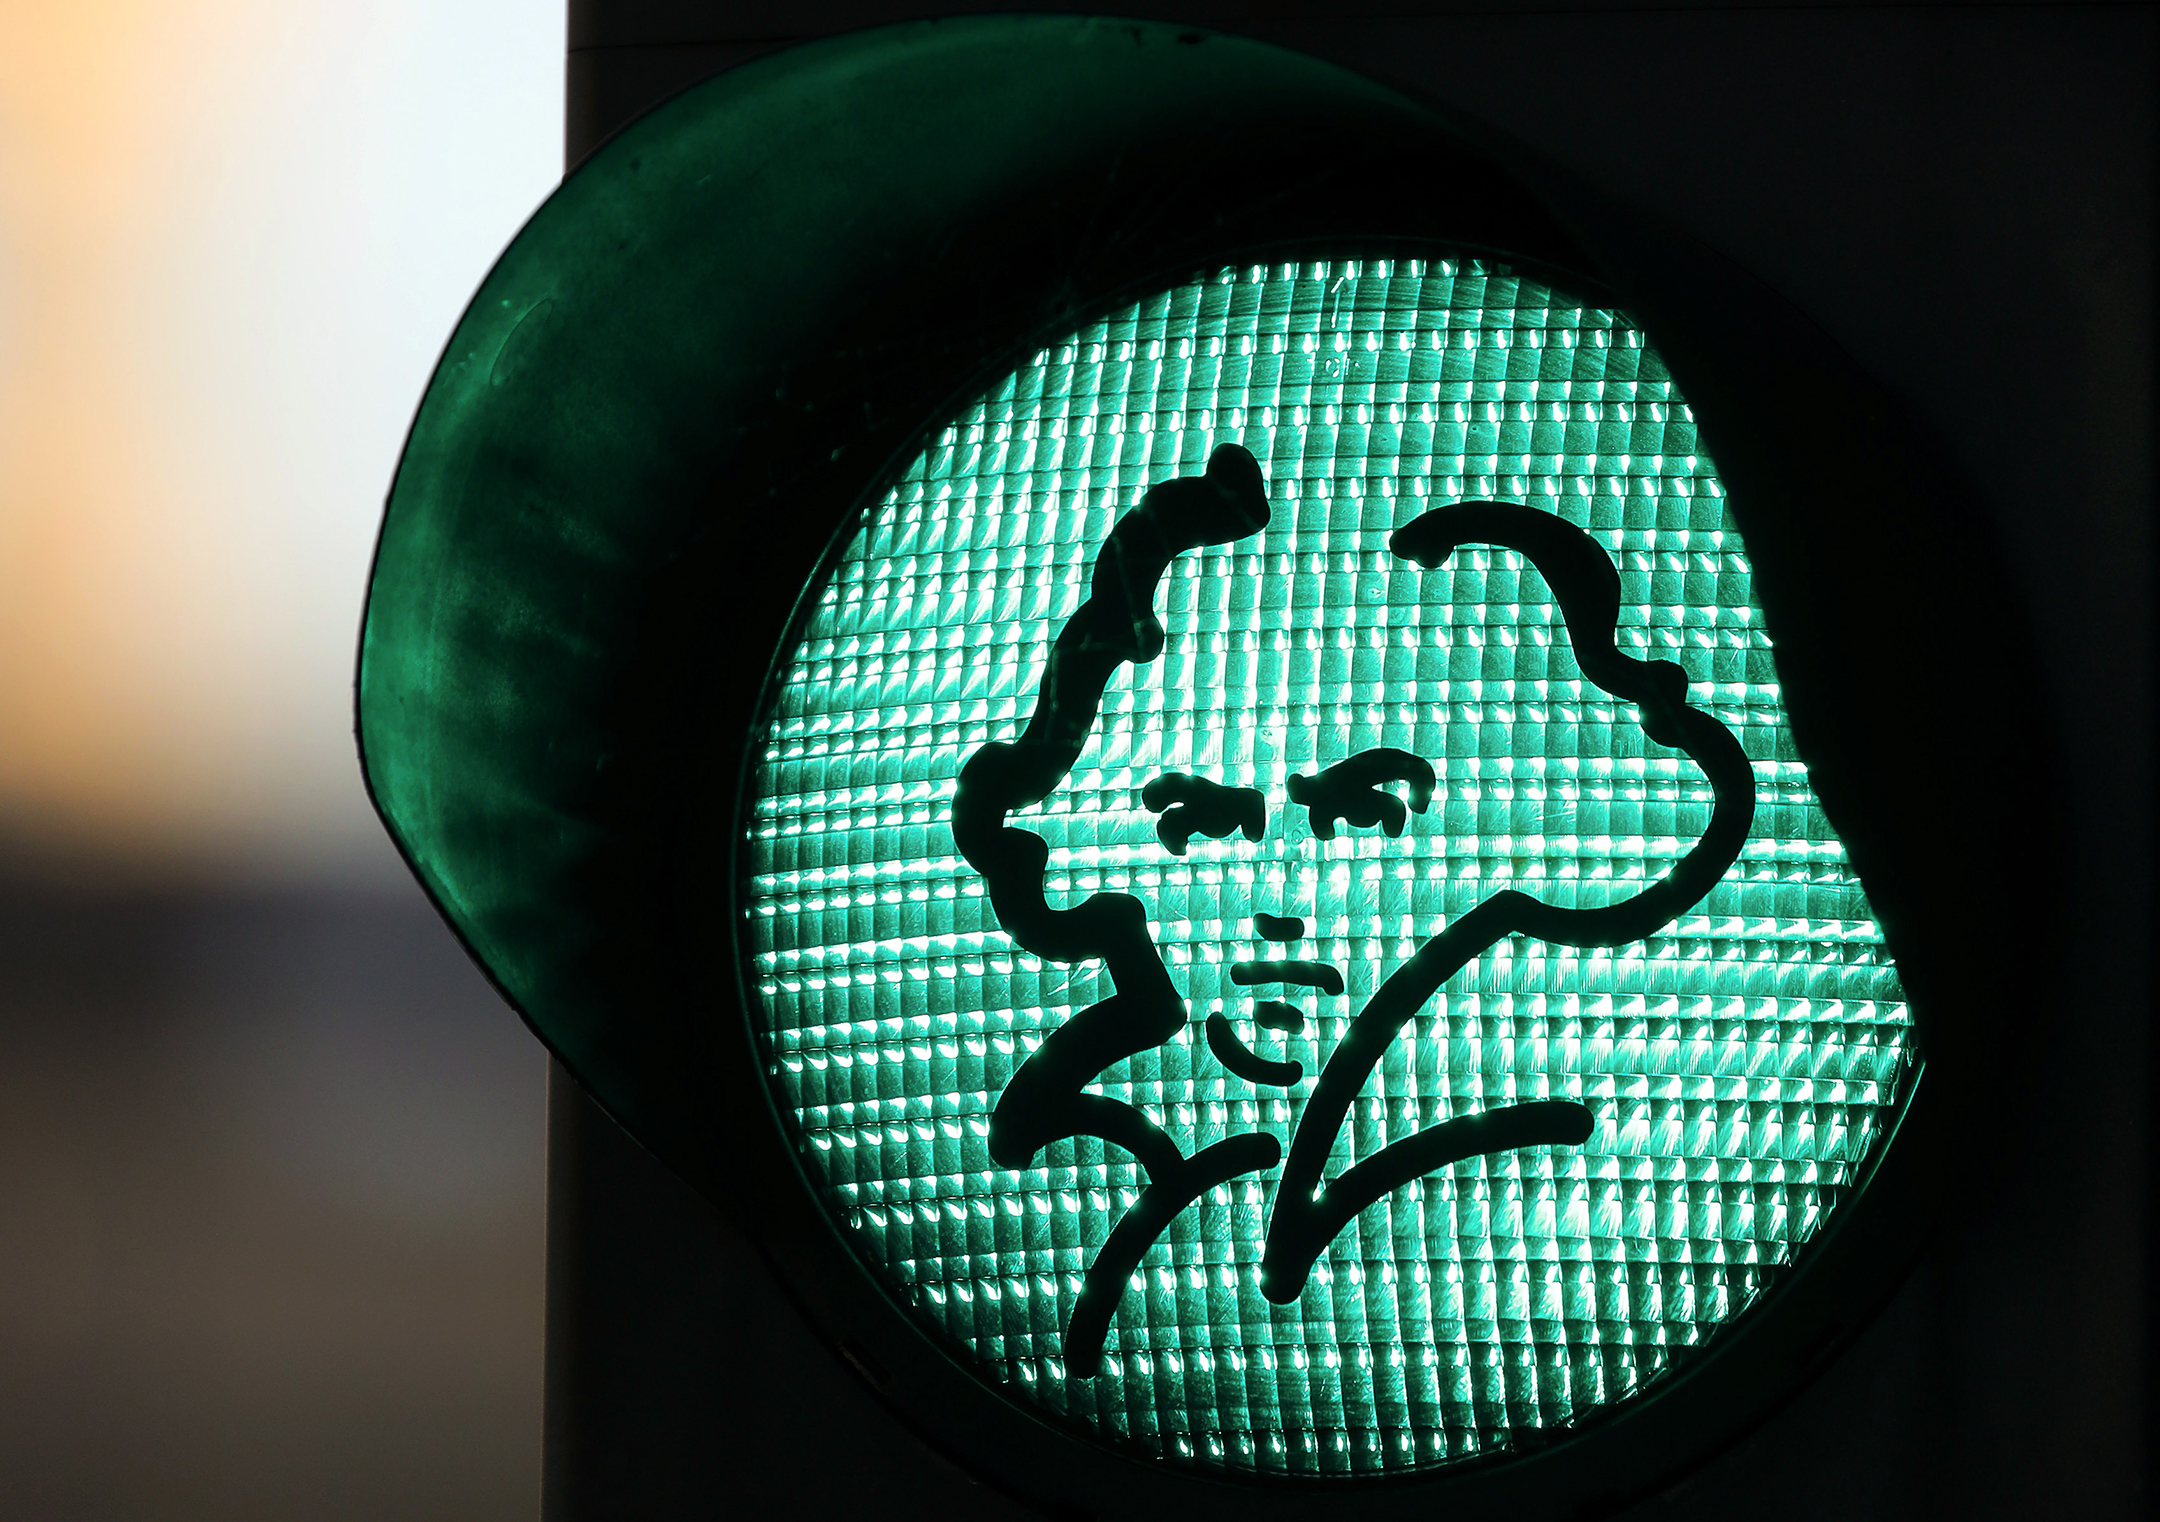 green traffic light with a black outline of beethoven's profile stuck on it